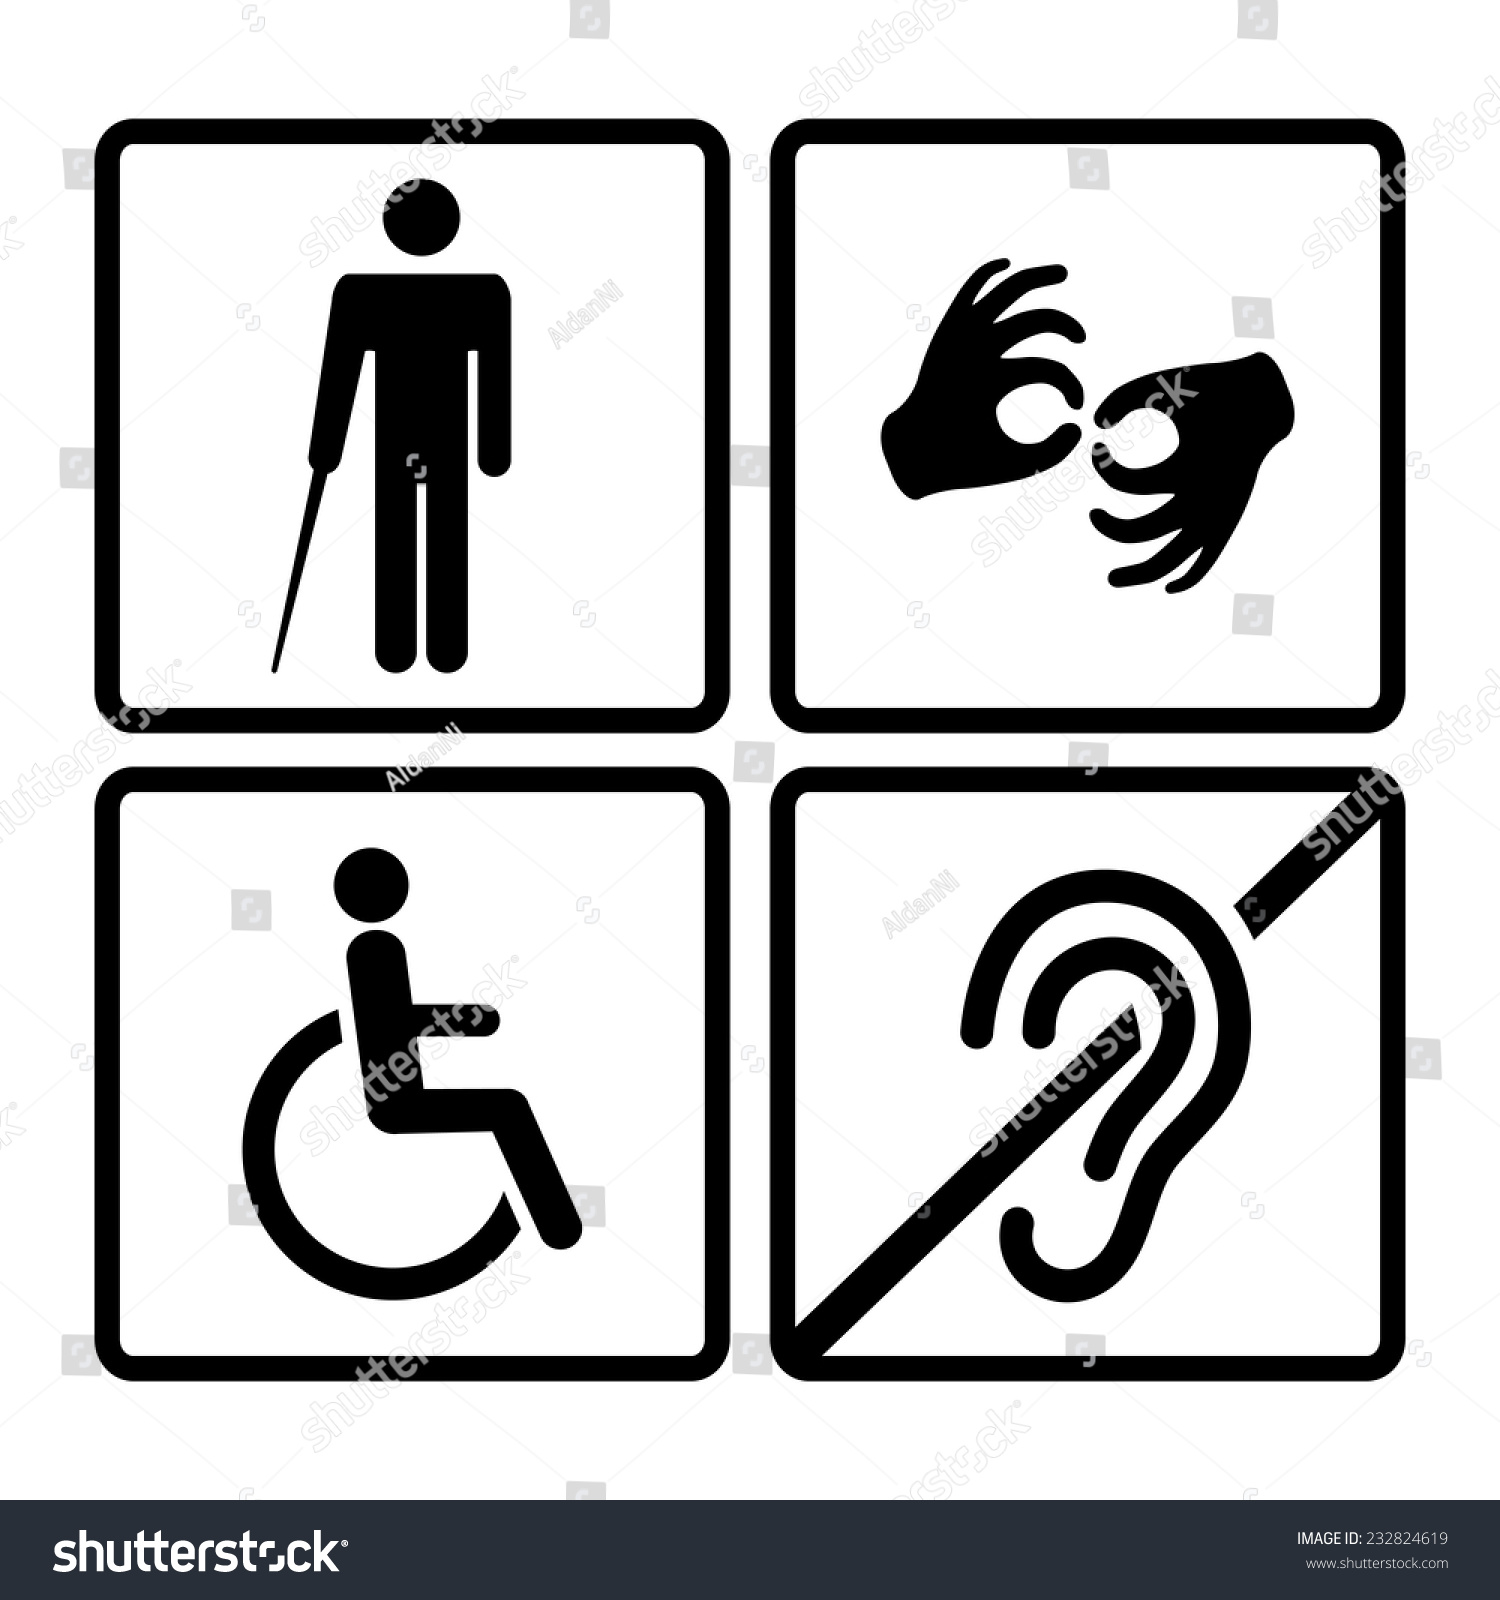 Vector Disabled Signs Deaf Dumbmute Blind Stock Vector. Company Car Taxable Benefit Used Nissan Nsx. How To Plan A Corporate Event. Police Academy Phoenix Az Medical Billing Com. Vet Tech Schools In Jacksonville Fl. Vmware Cloud Management Software. U Verse Internet Speeds Trash Pickup Brooklyn. Information Technology Network. South Pacific Bible College Create Banner Ad